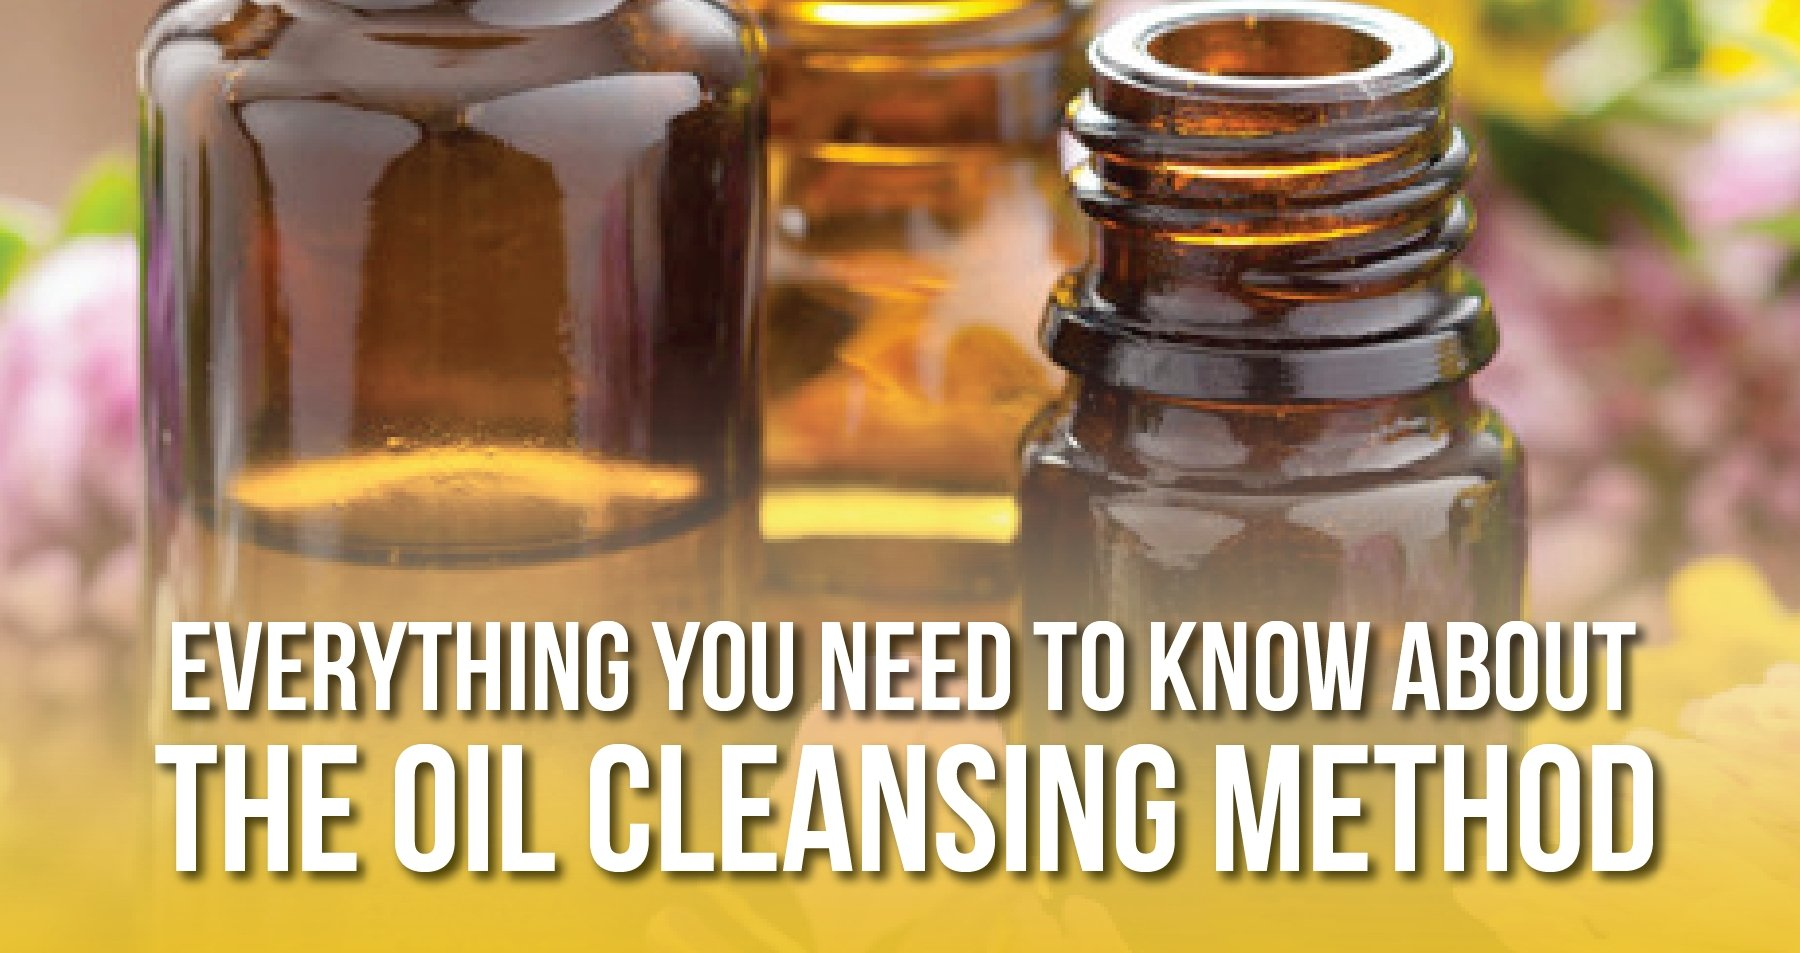 Everything You Need to Know About the Oil Cleansing Method | iHeart Nature